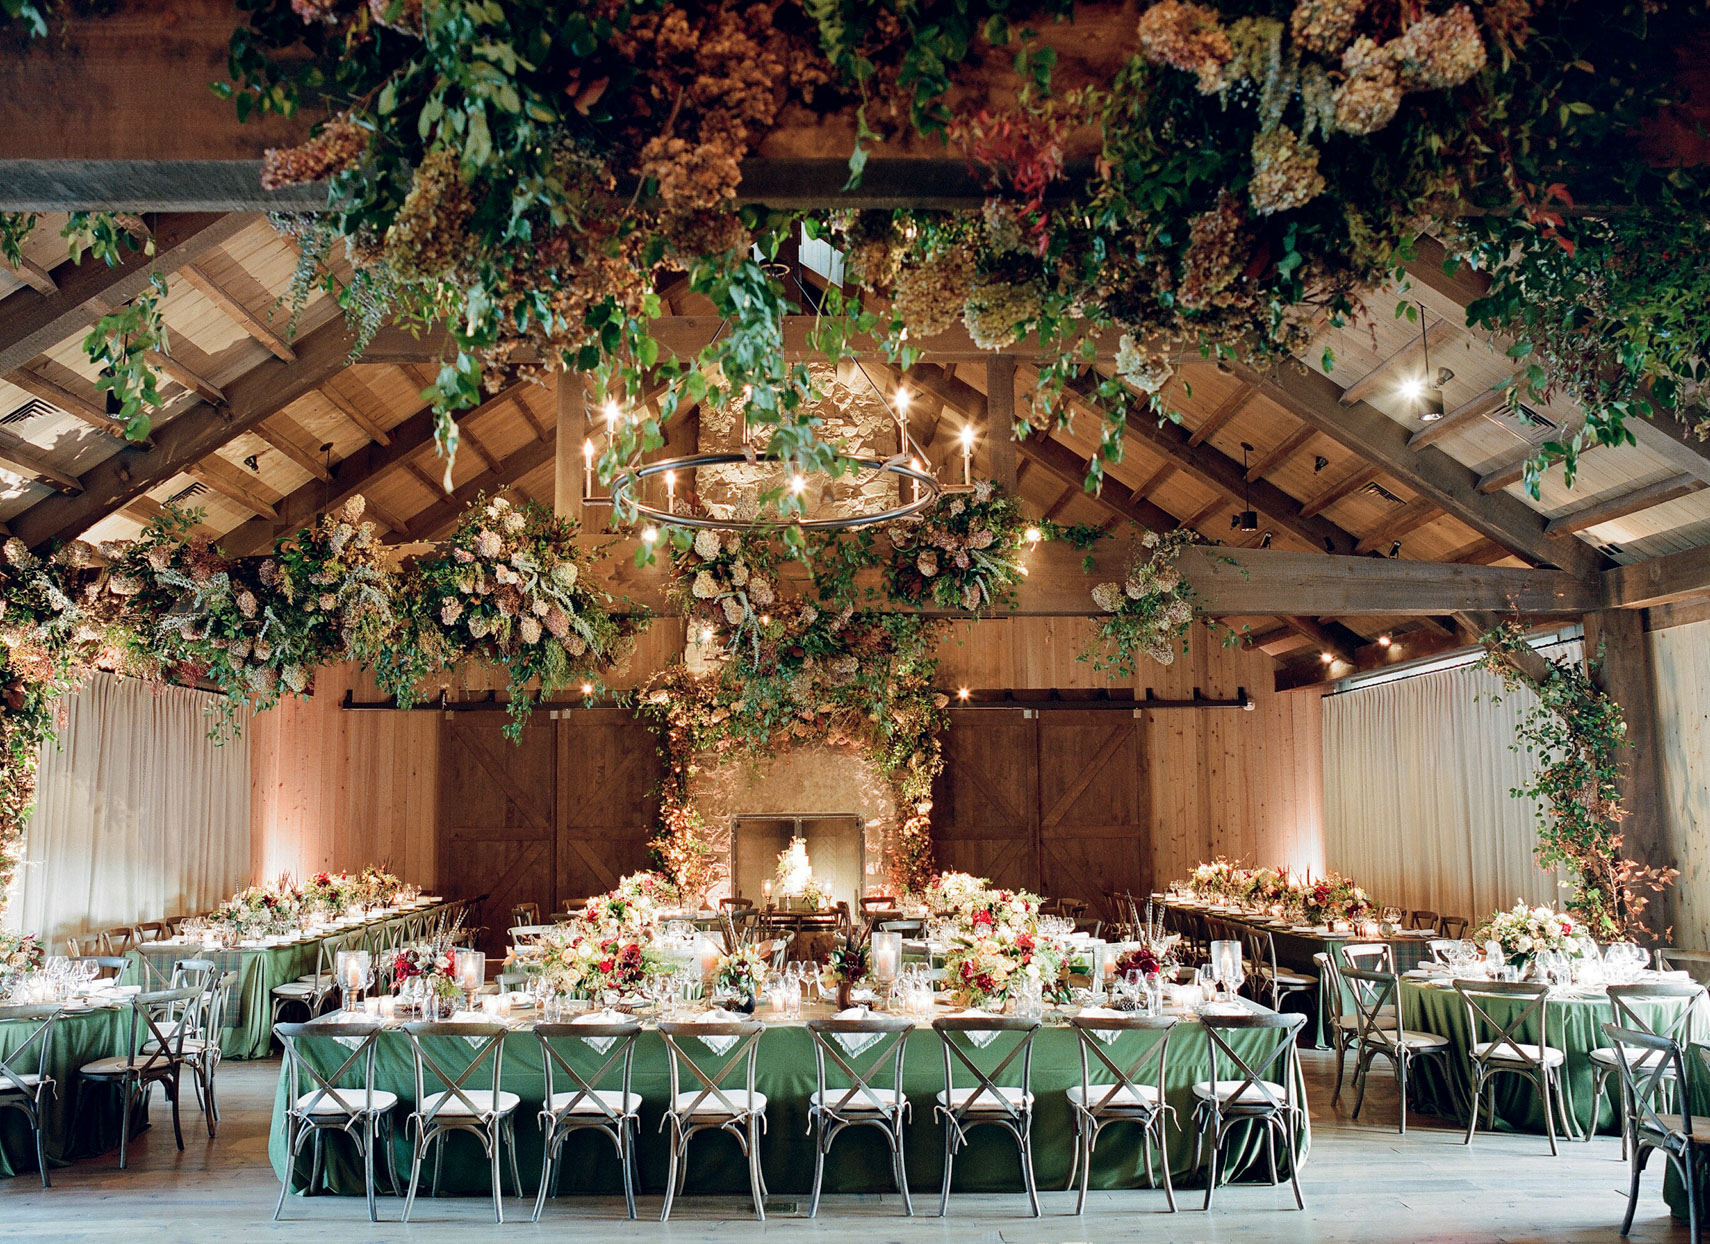 upscaled barn reception with long green tables and floral installments